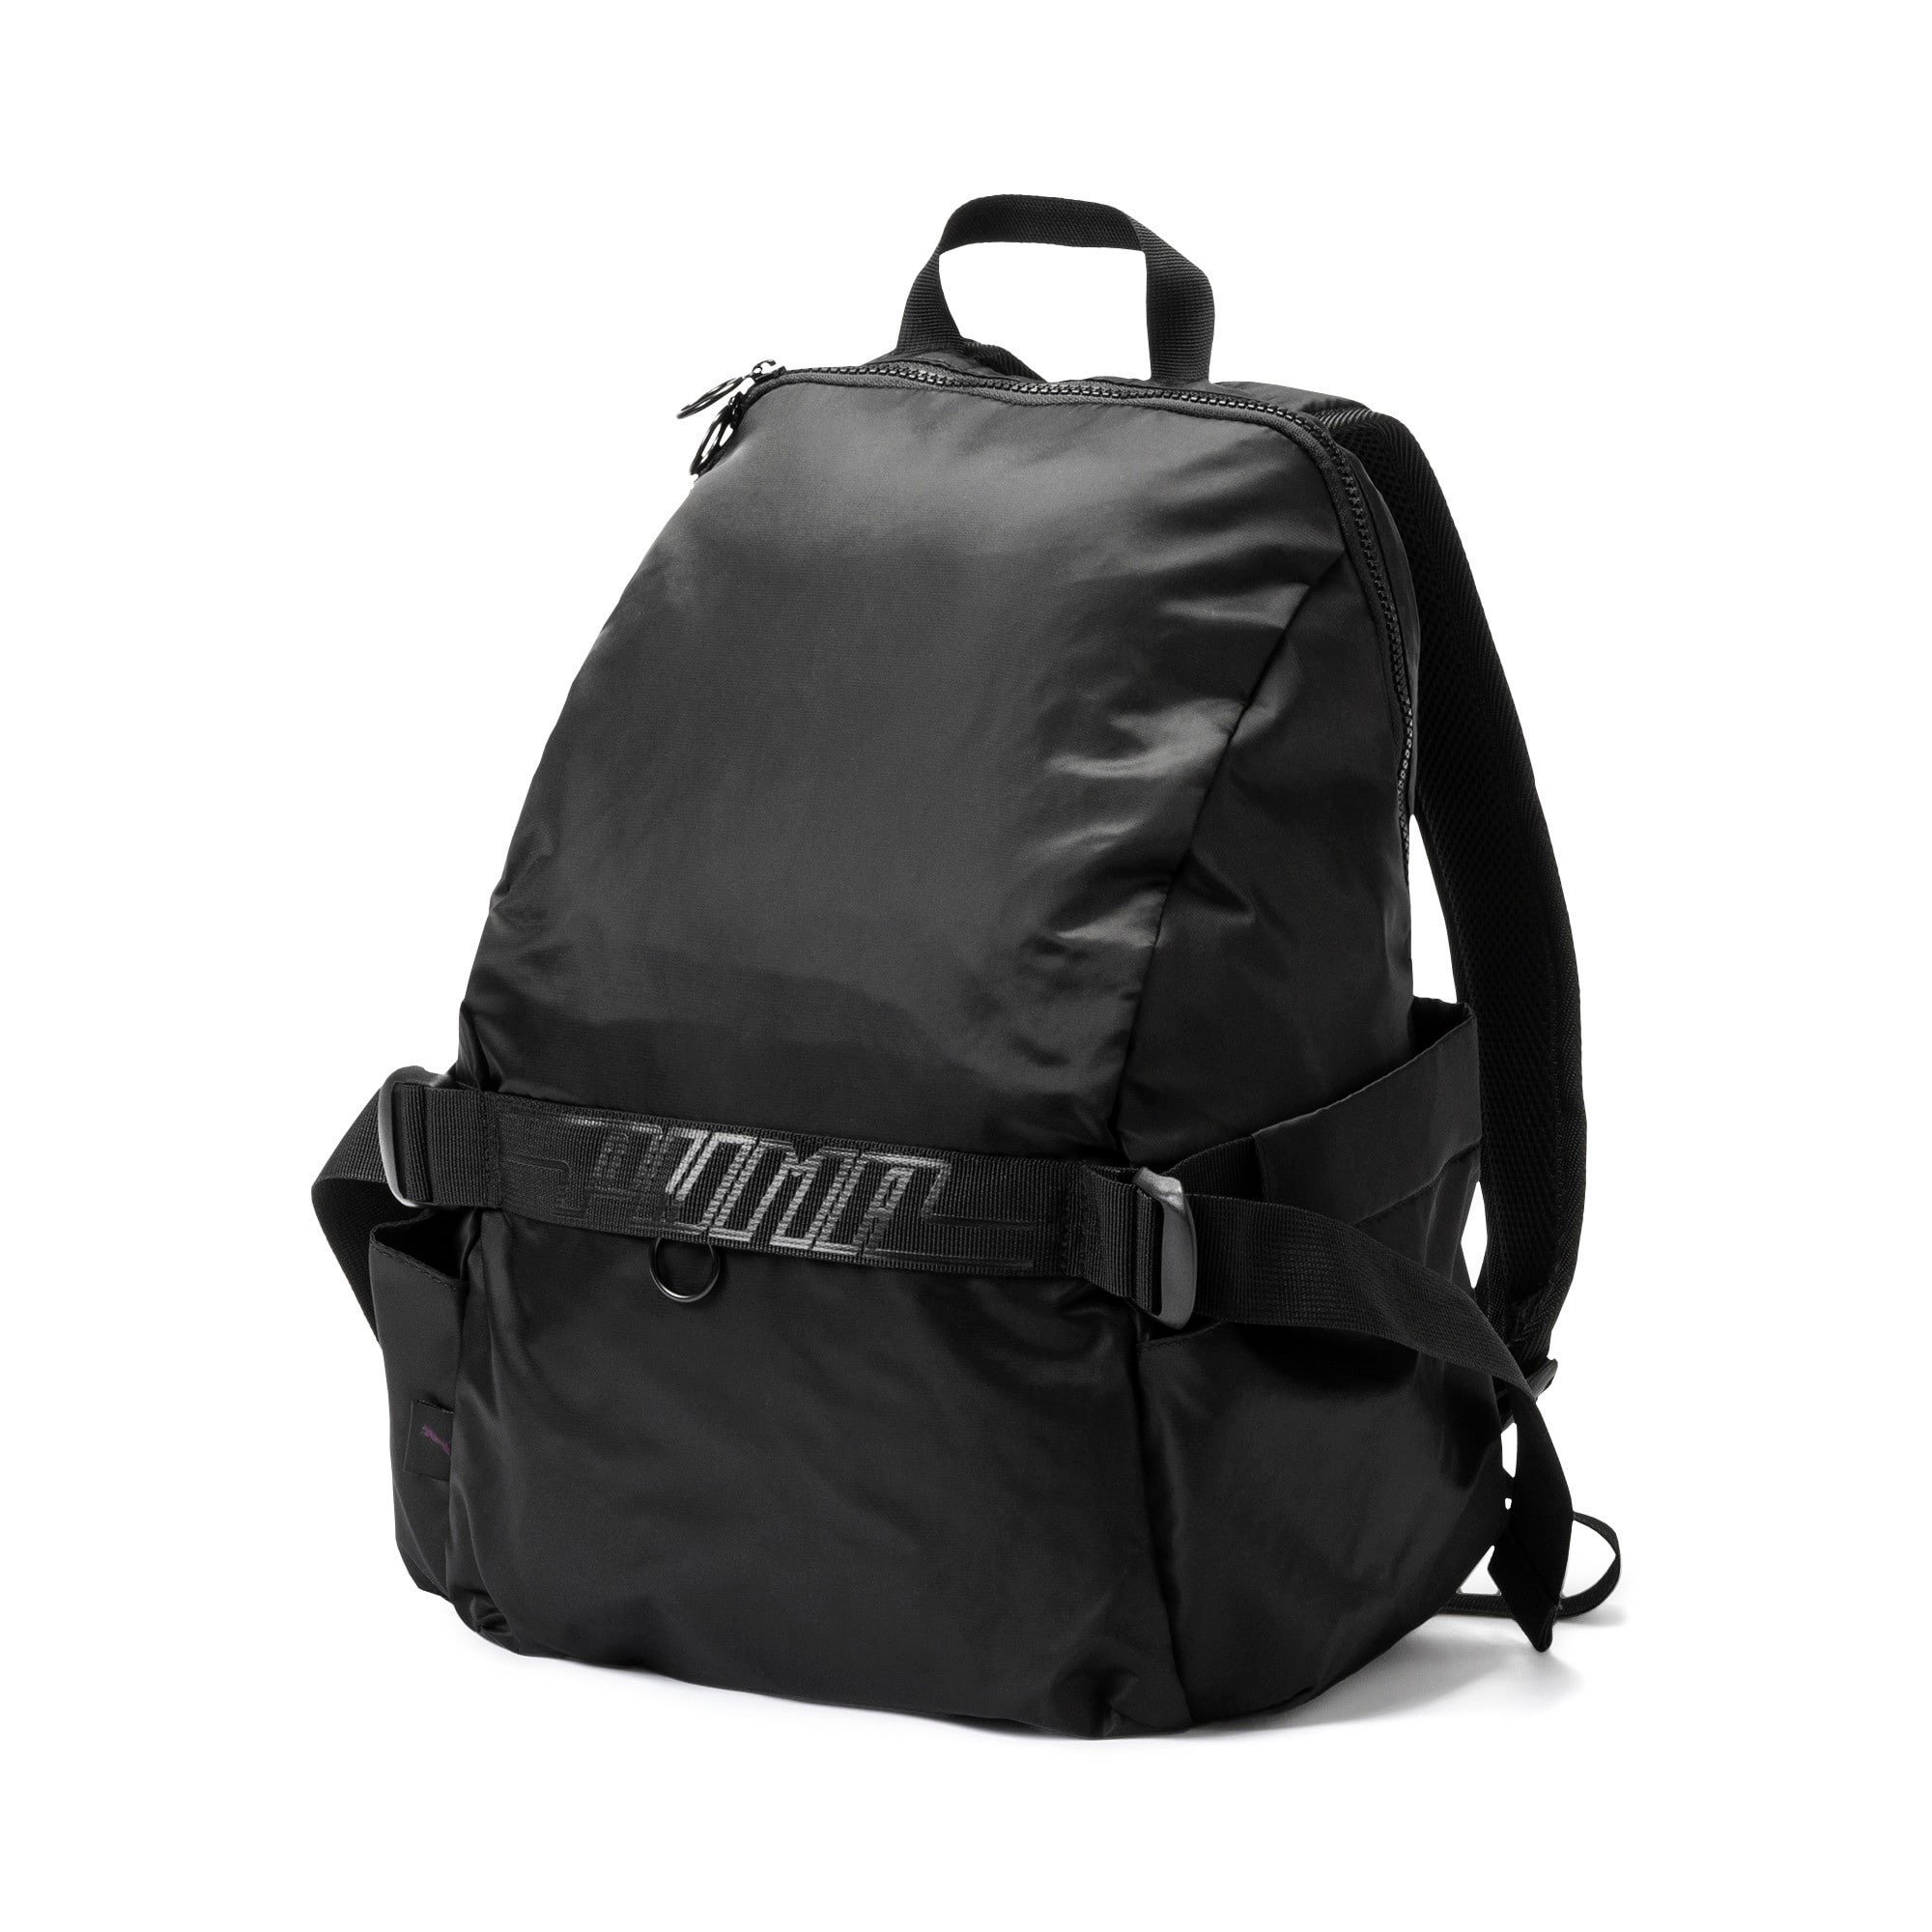 Thumbnail 1 of Cosmic Backpack, Puma Black, medium